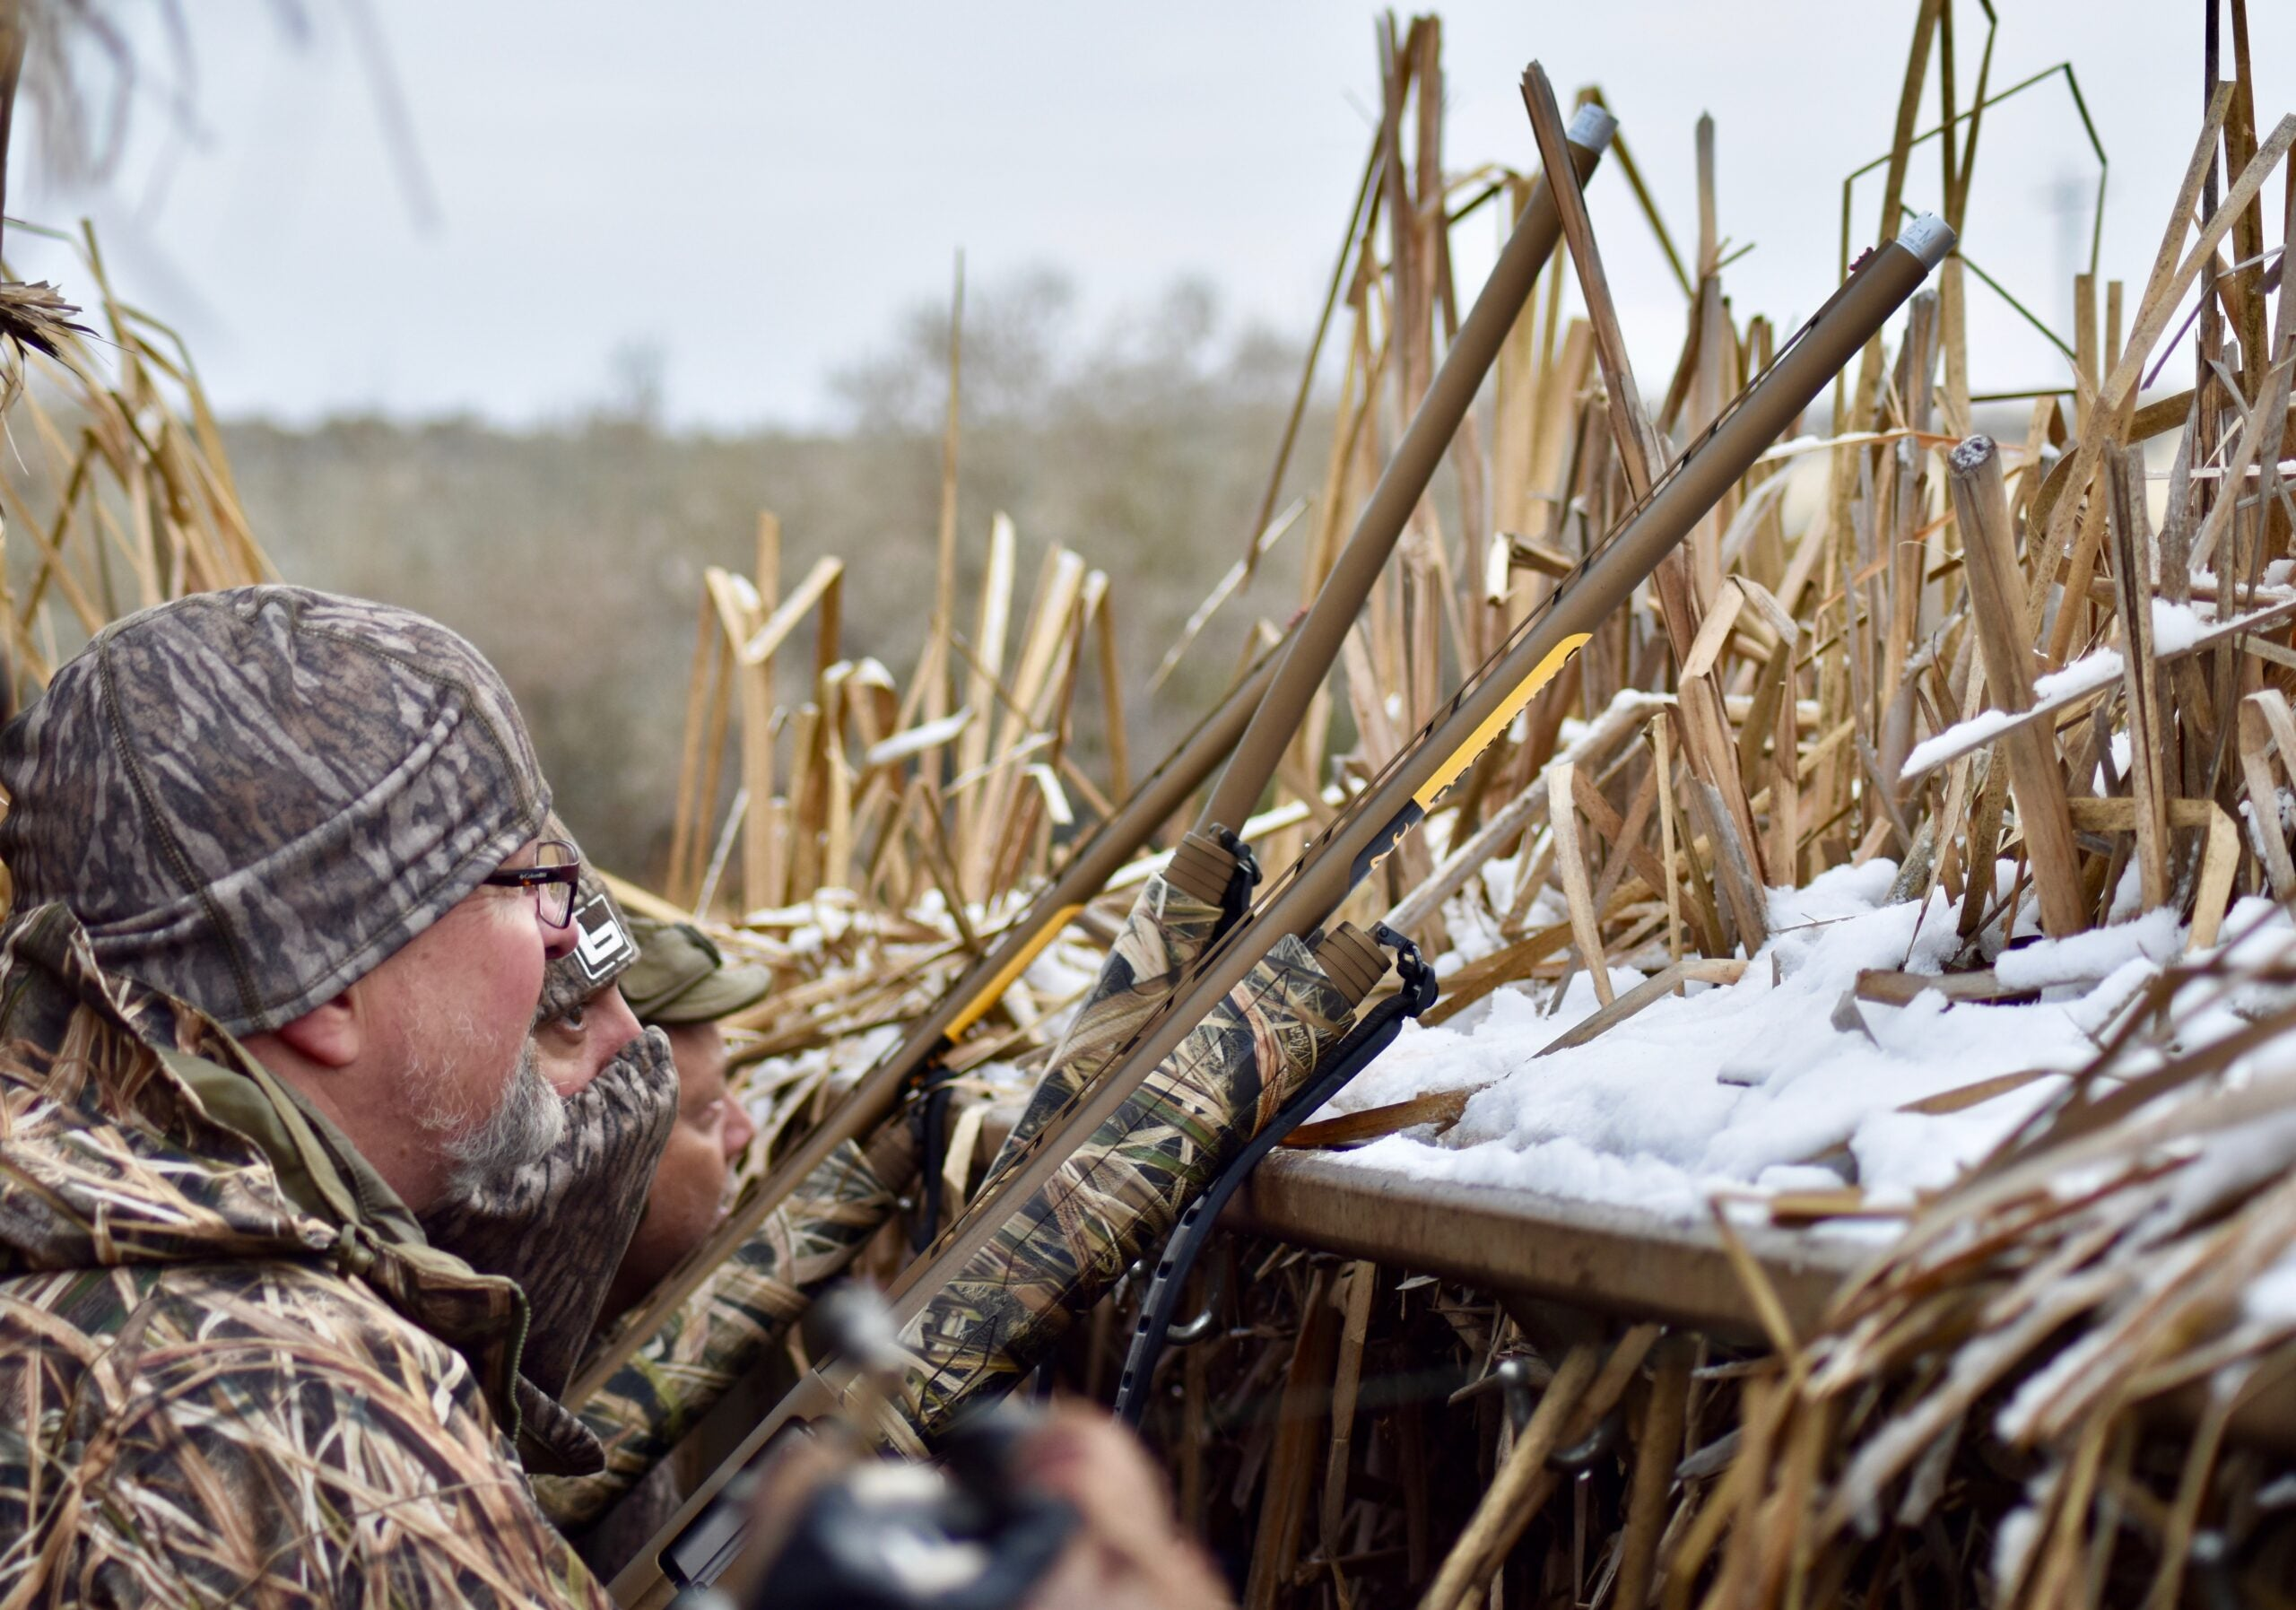 Eddie Nickens, Matt Coffey, and Gregg Powers with the Browning Wicked Wing A5s at the ready in an Eastern Washington duck blind.